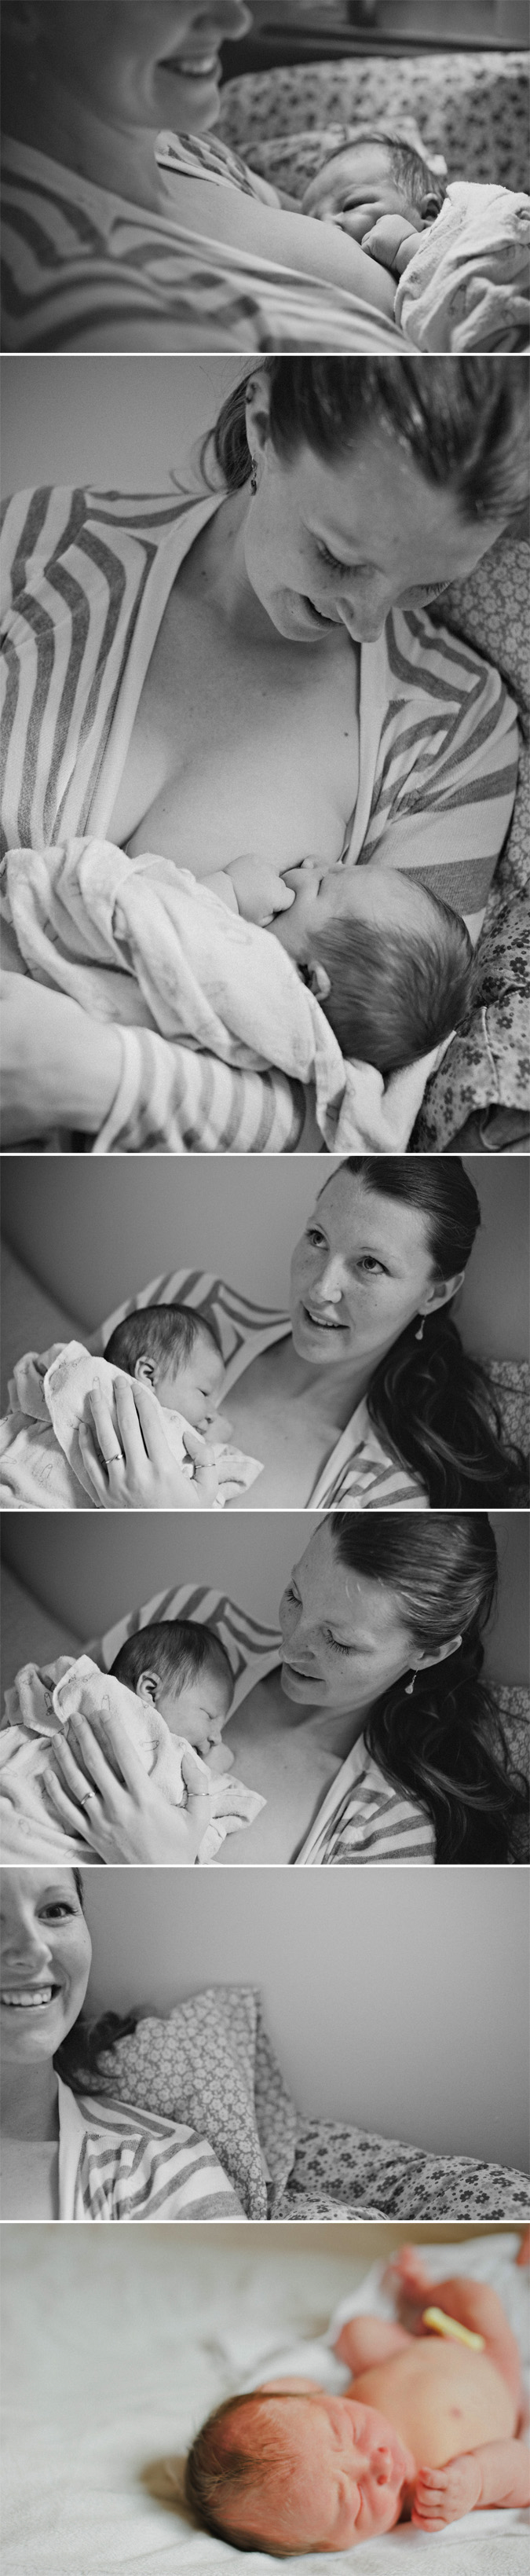 vancouver island birth story newborn photographer